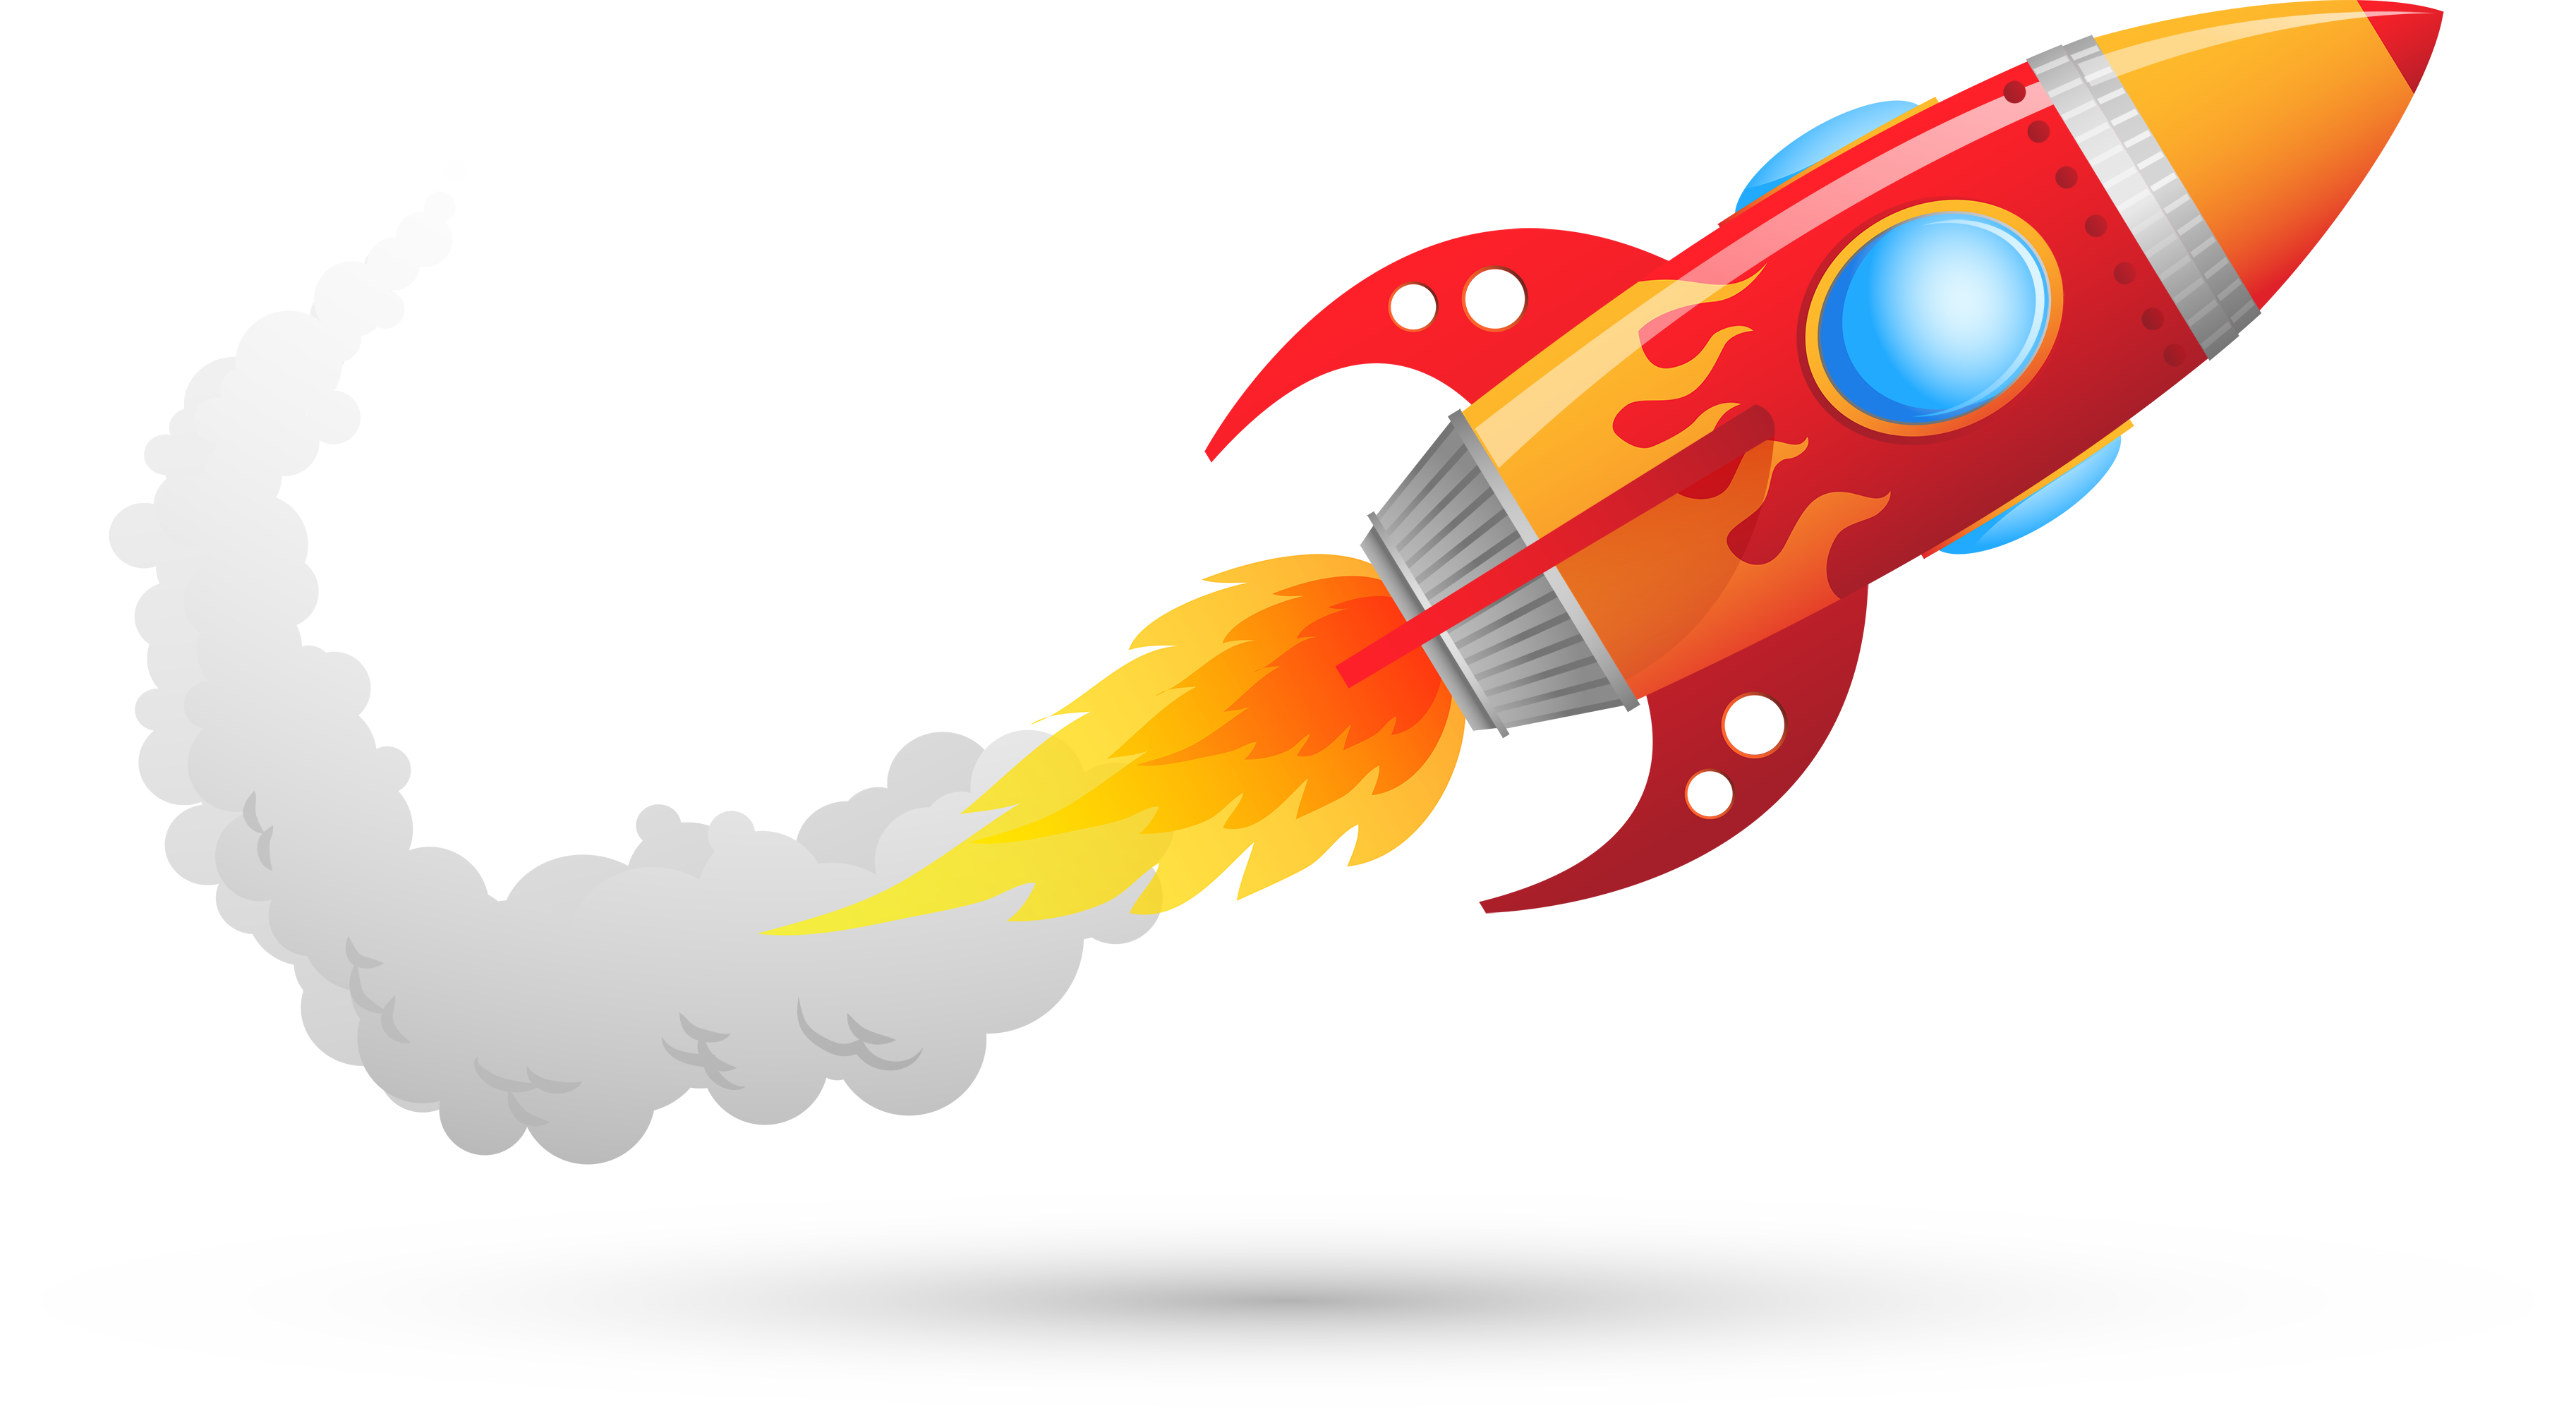 Rocket clipart rocket fire Catalyst Welcome Easy Ignition Ignition